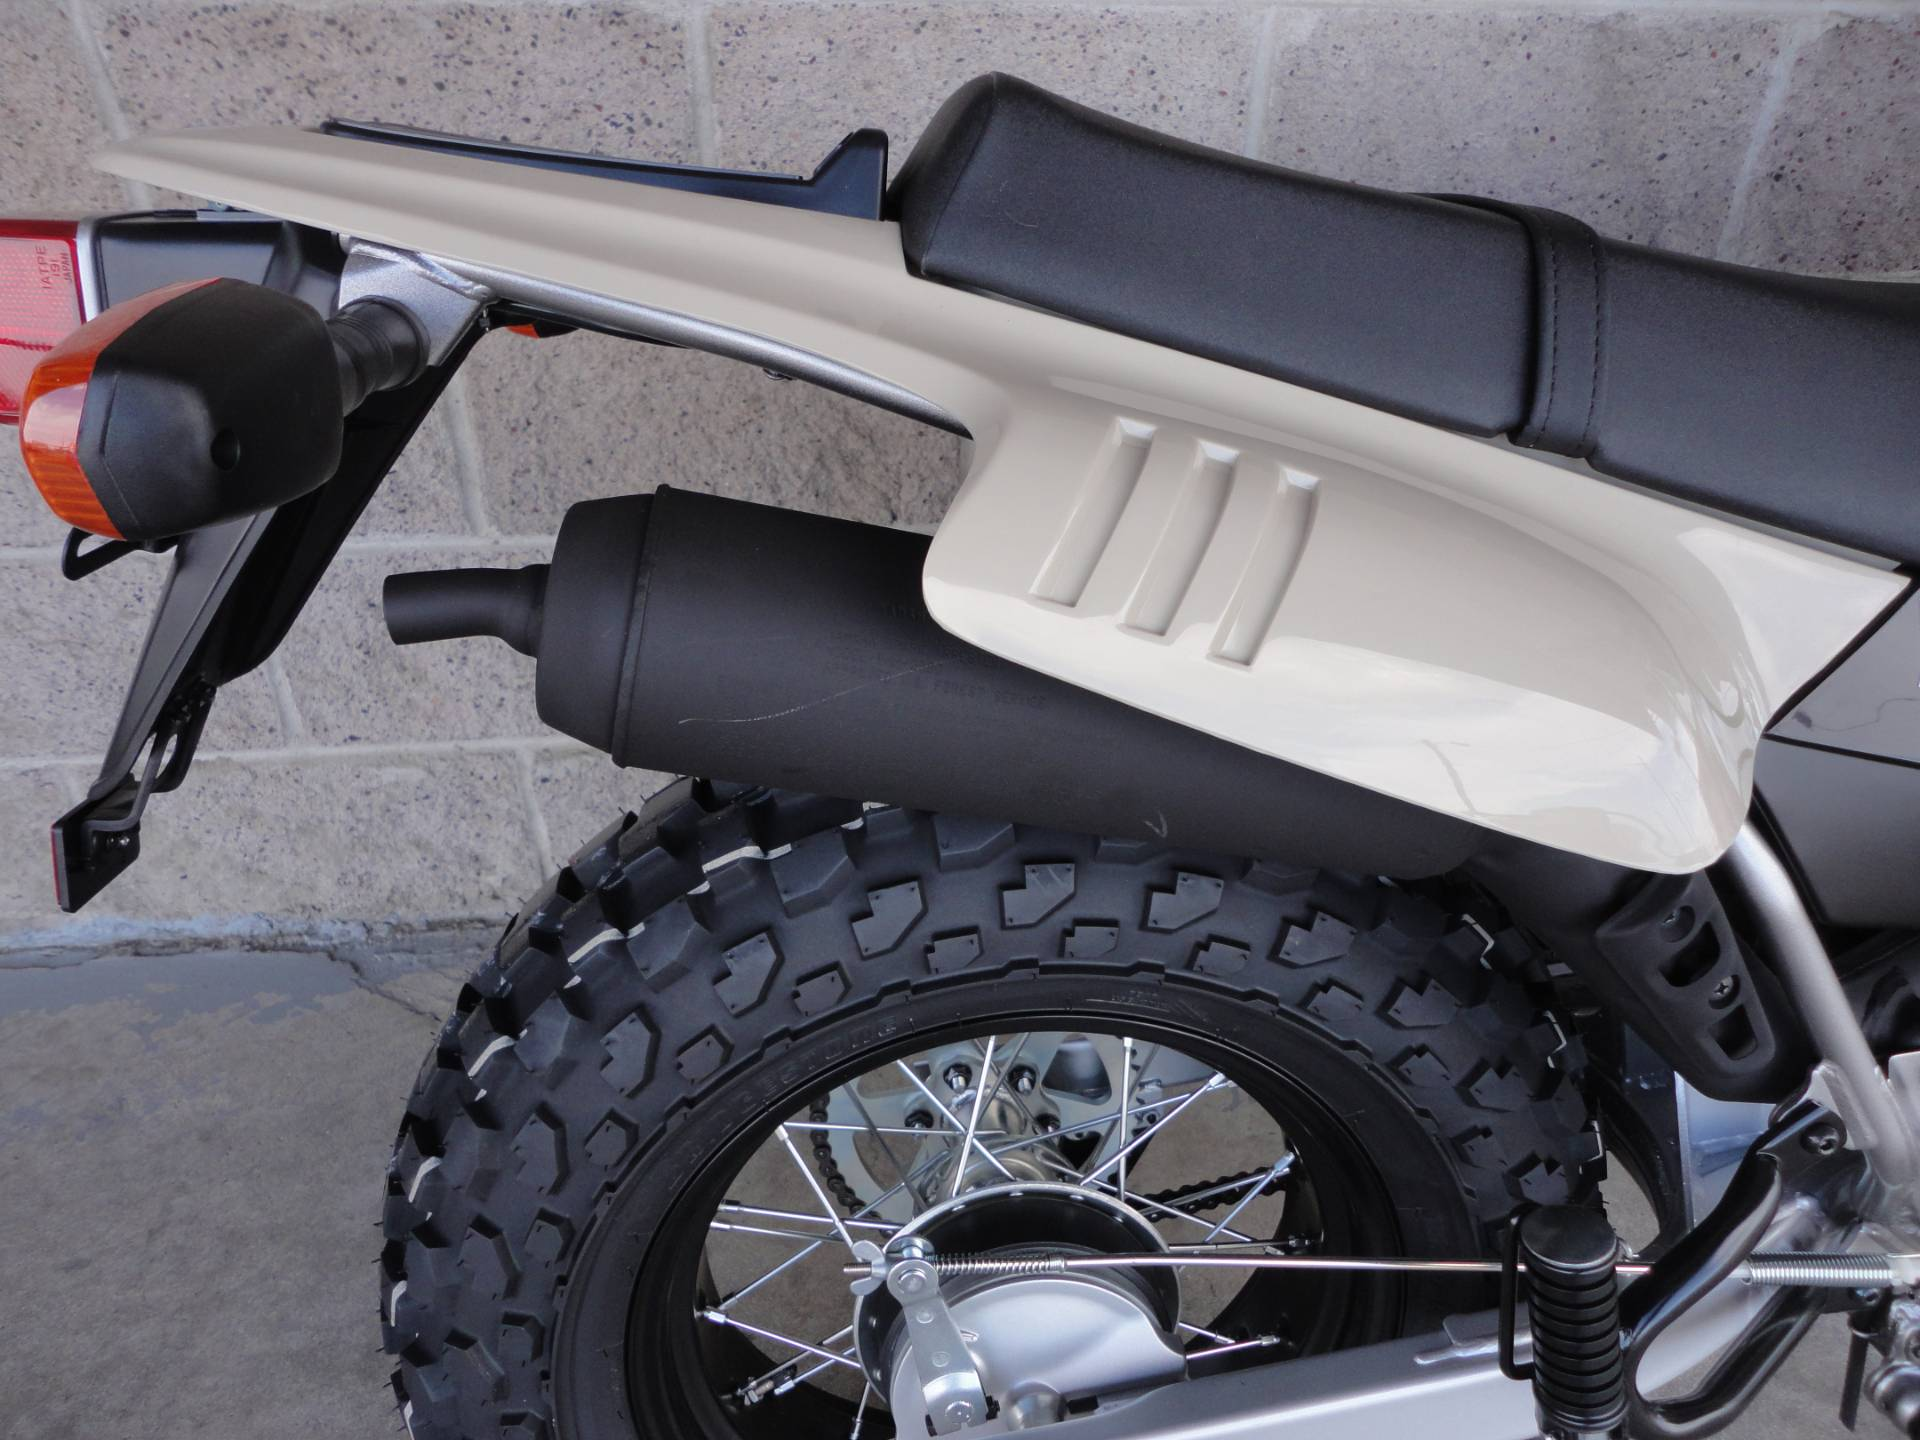 2020 Yamaha TW200 in Denver, Colorado - Photo 21